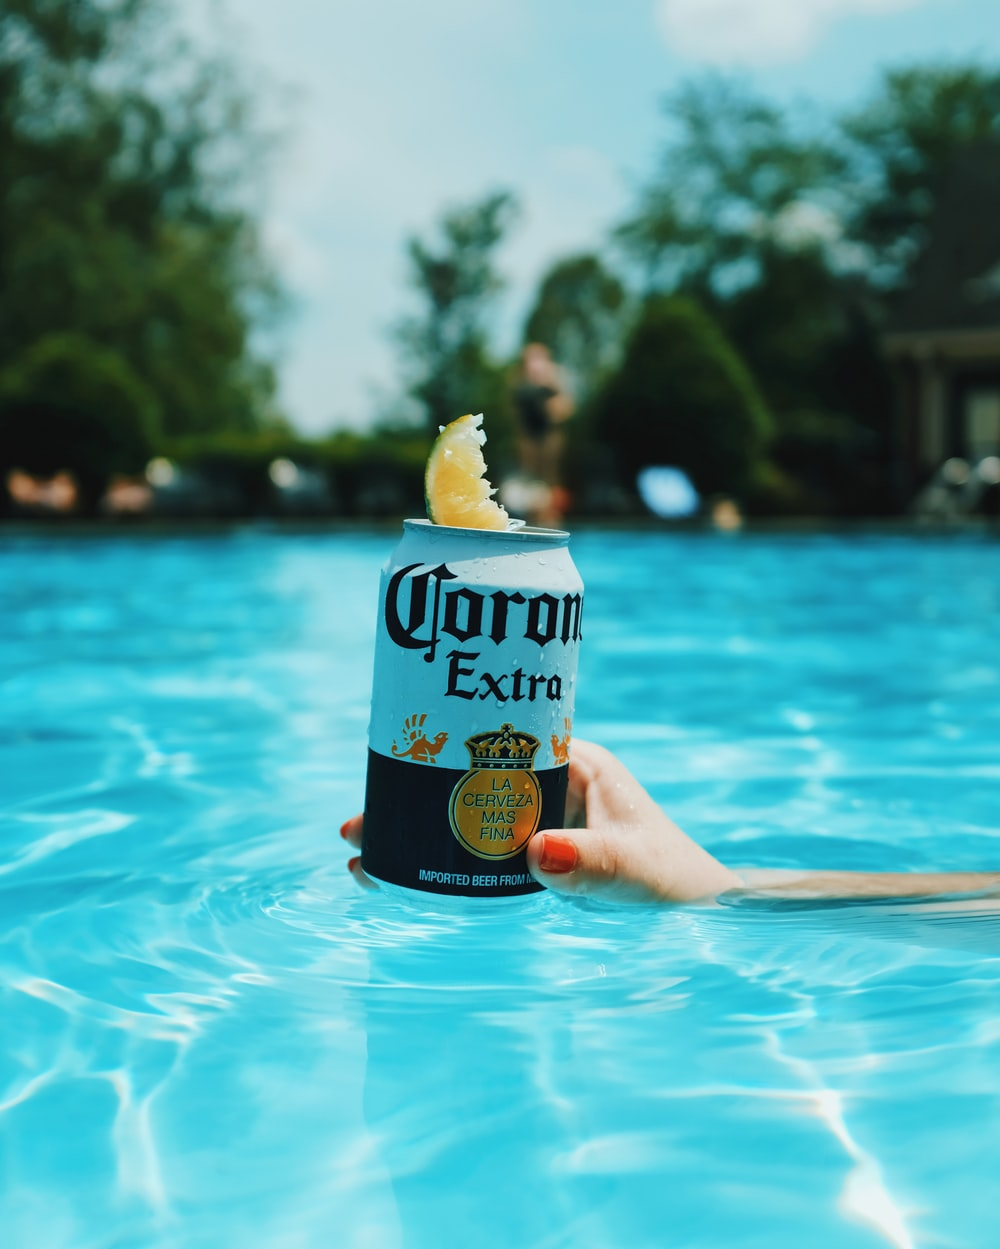 Corona extra beer can on swimming pool